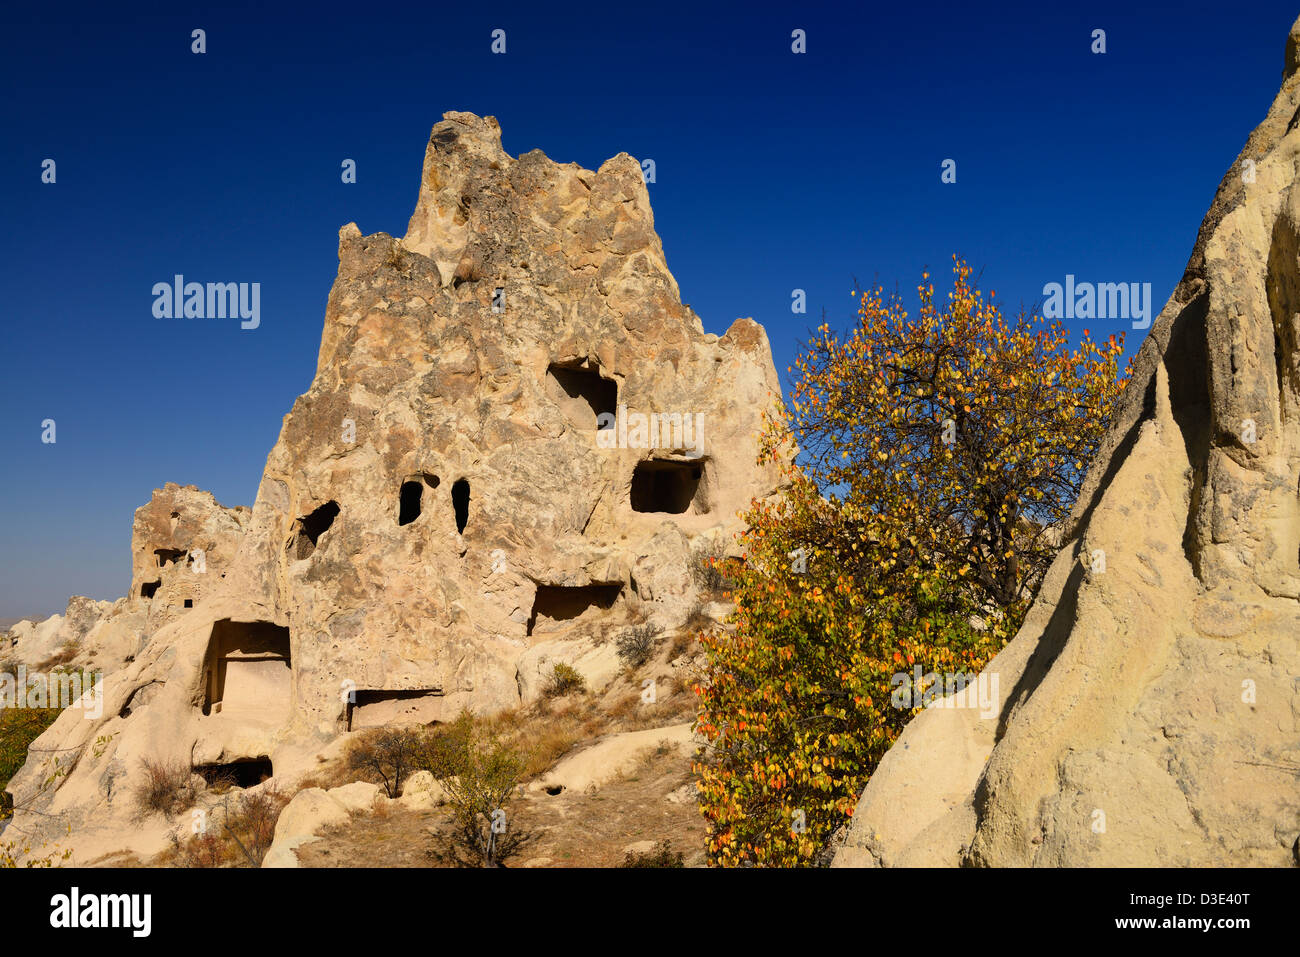 Fall view of Kizlar Manastiri Nunnery Convent Monastery at Goreme Valley Open Air Museum Cappadocia Turkey - Stock Image